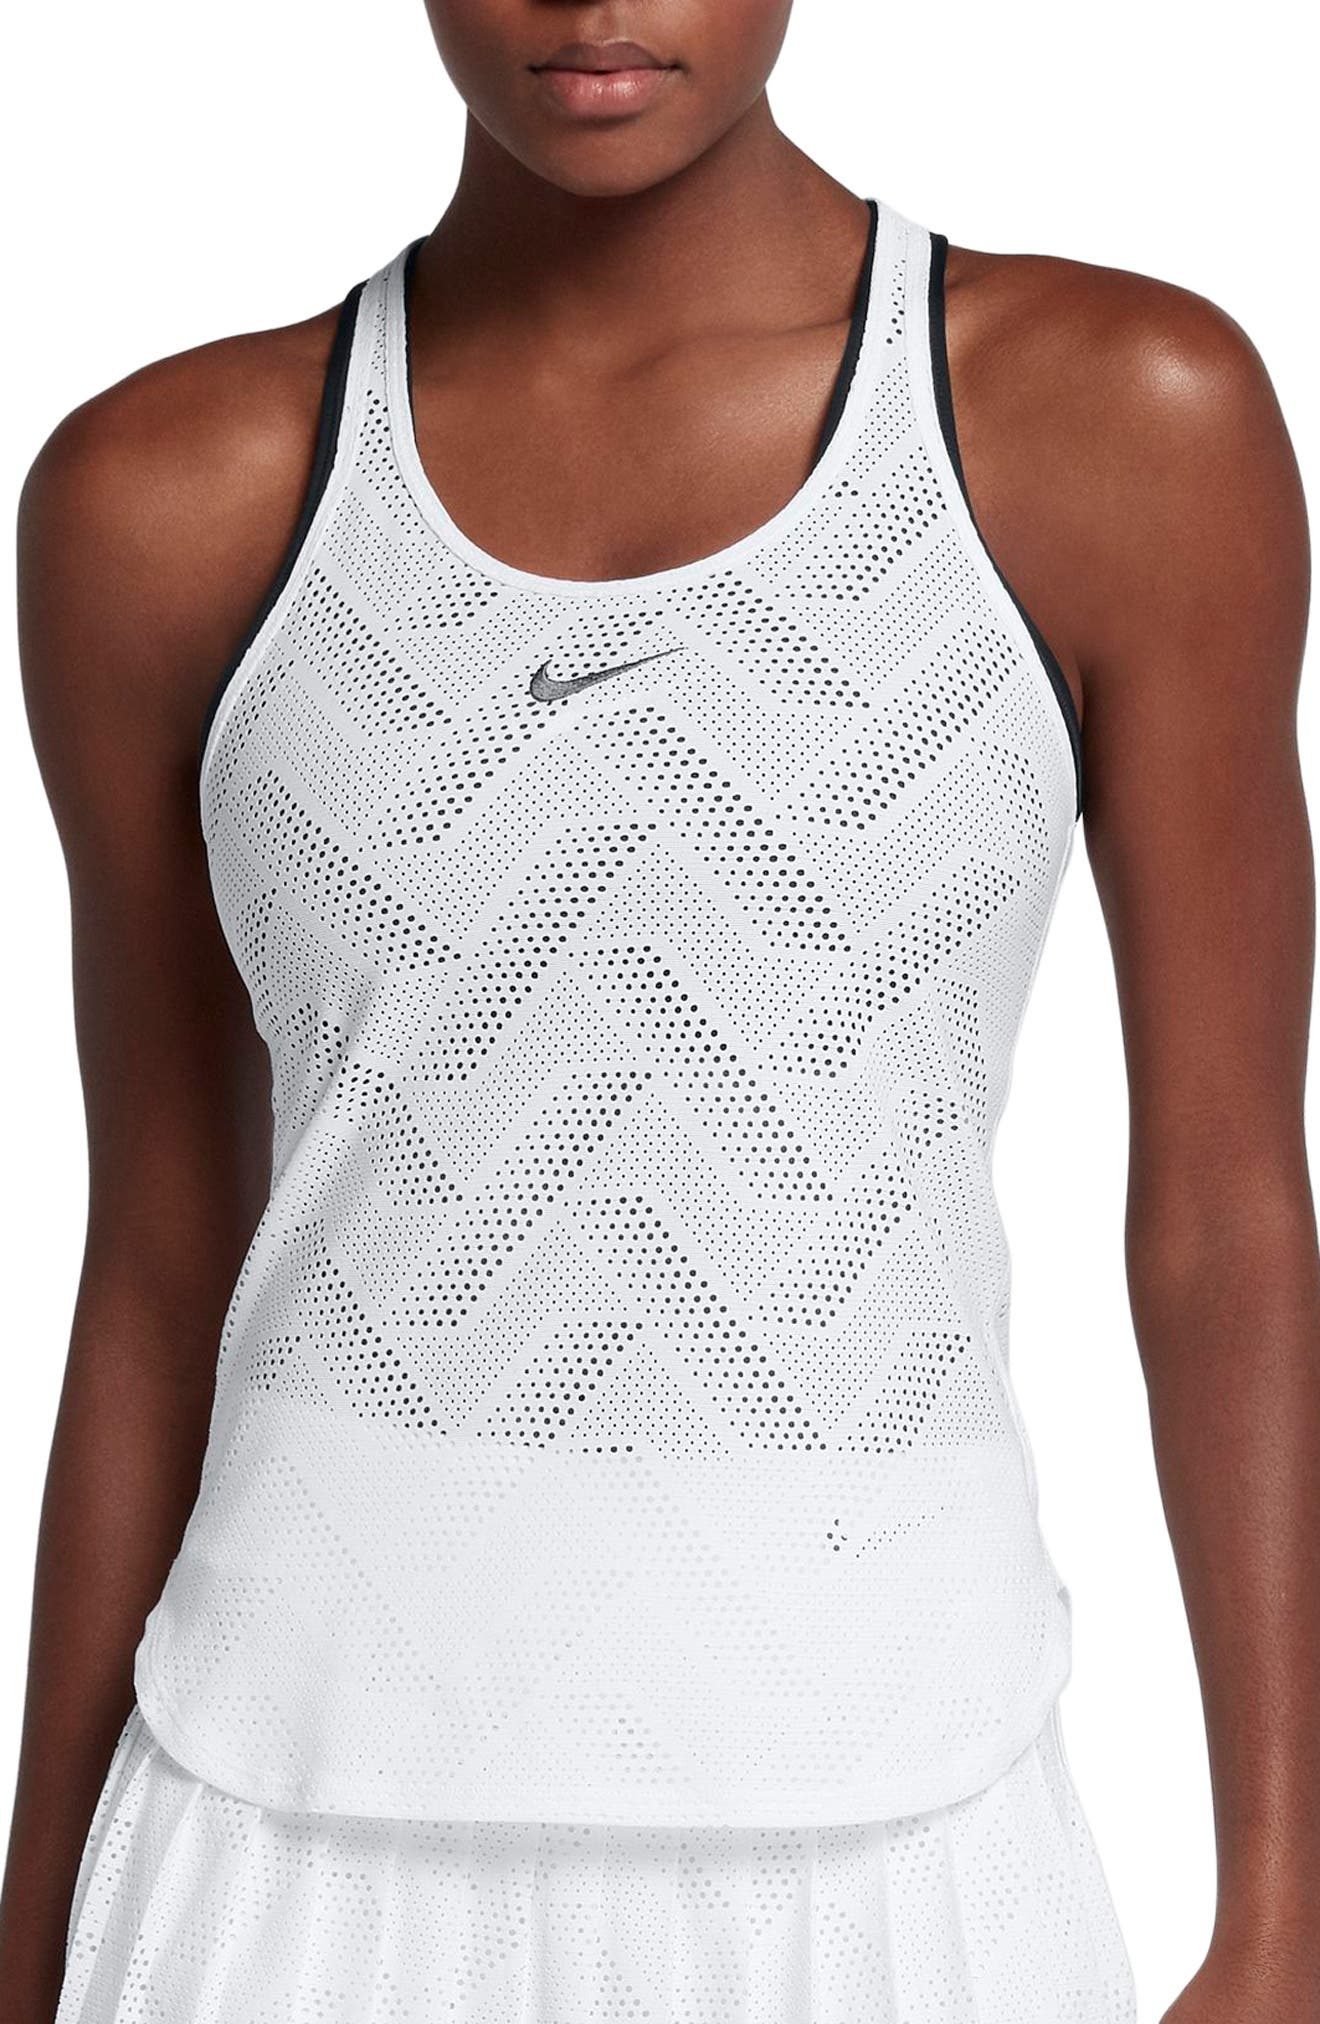 Alternate Image 1 Selected - Nike Maria Premier Dri-FIT Tank